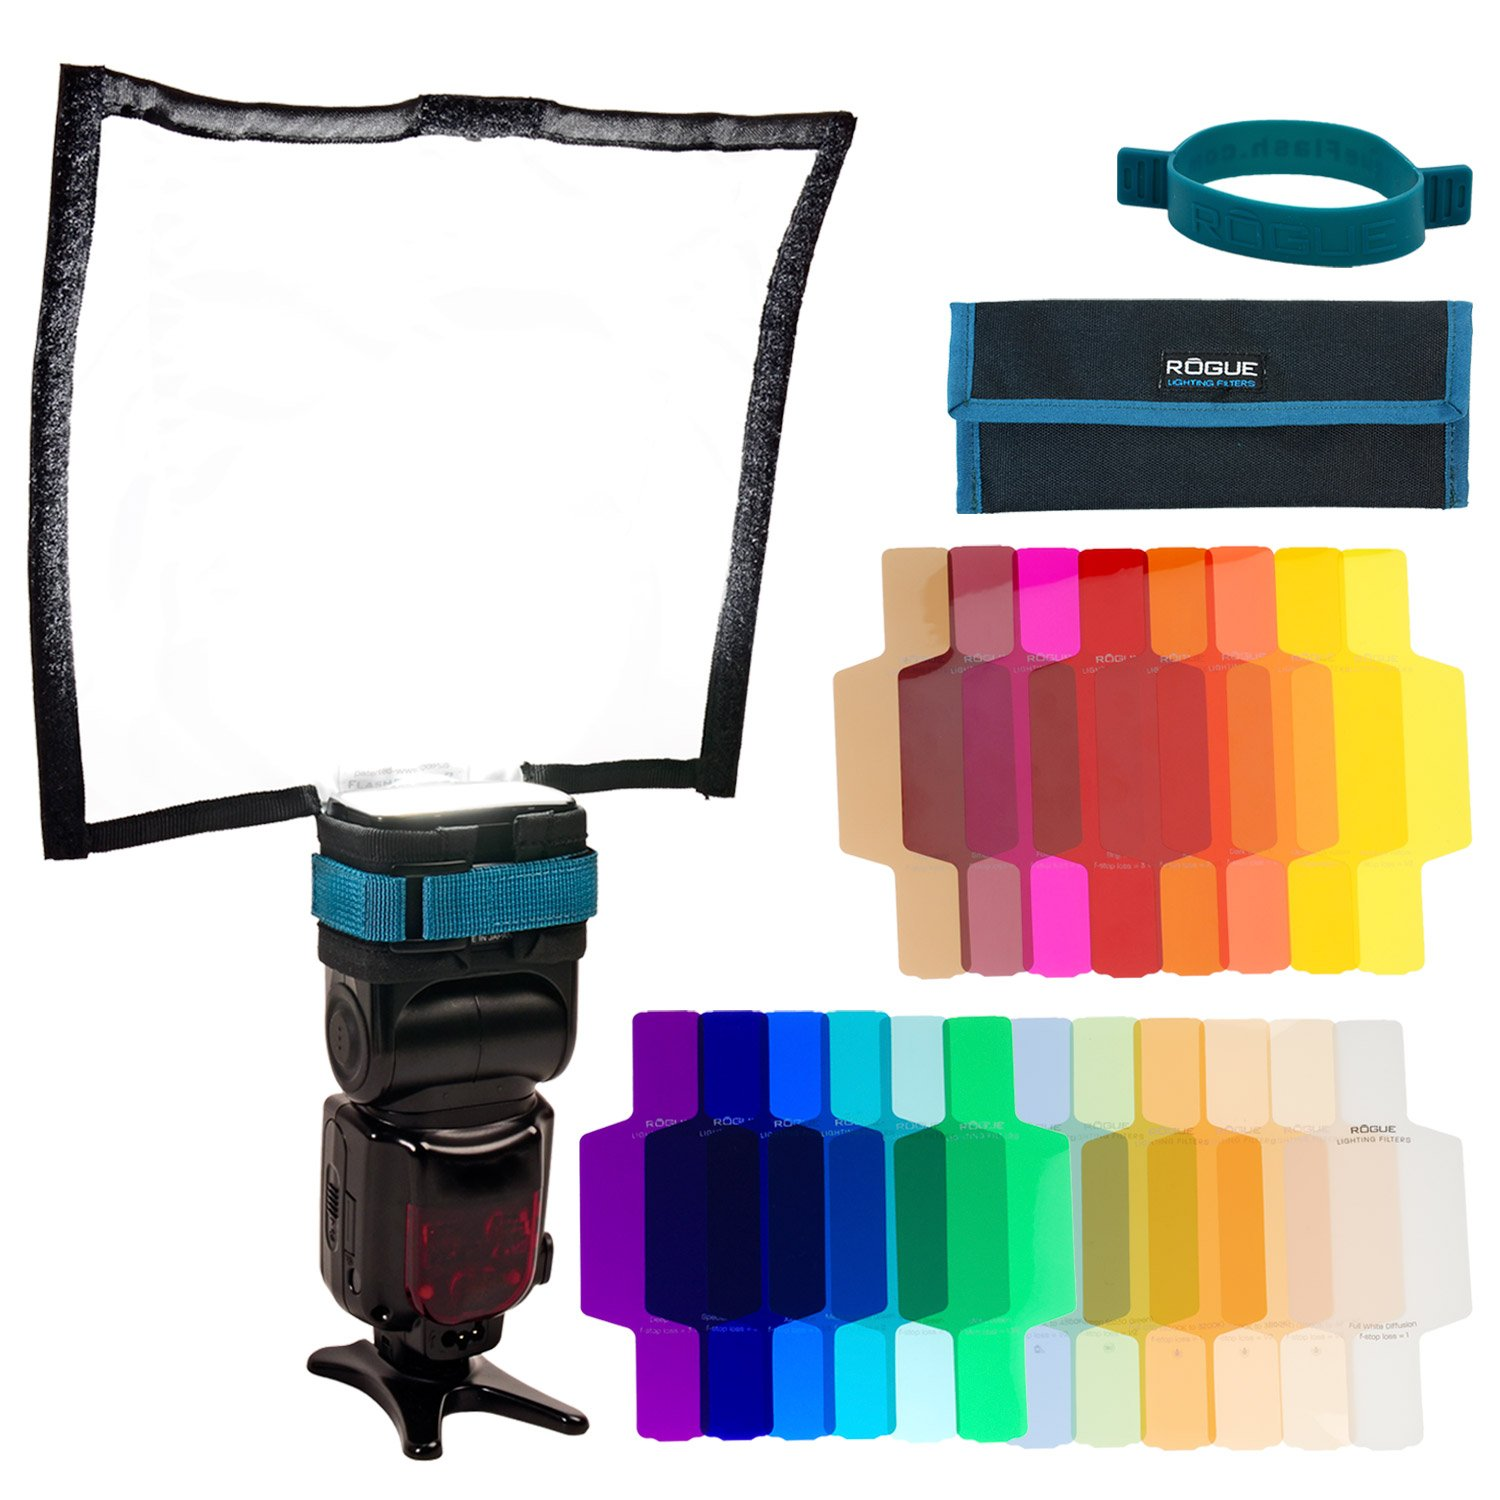 Rogue FlashBender 2 Large Reflector + Rogue Flash Gels - Combo Filter Kit (20 gels + attachment band)